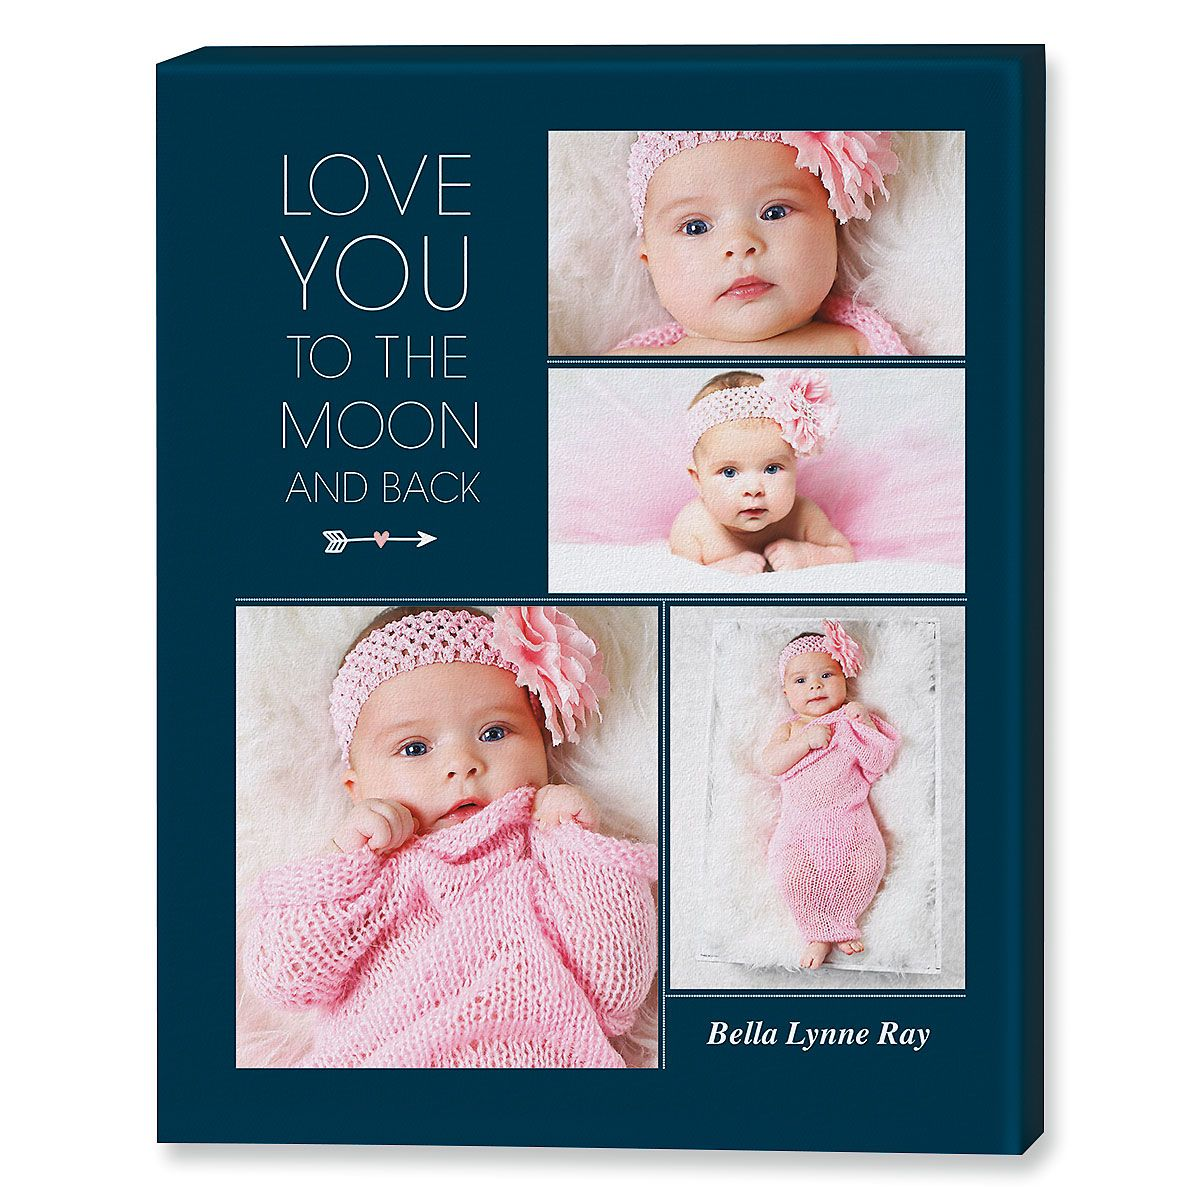 Love You Collage Photo Canvas